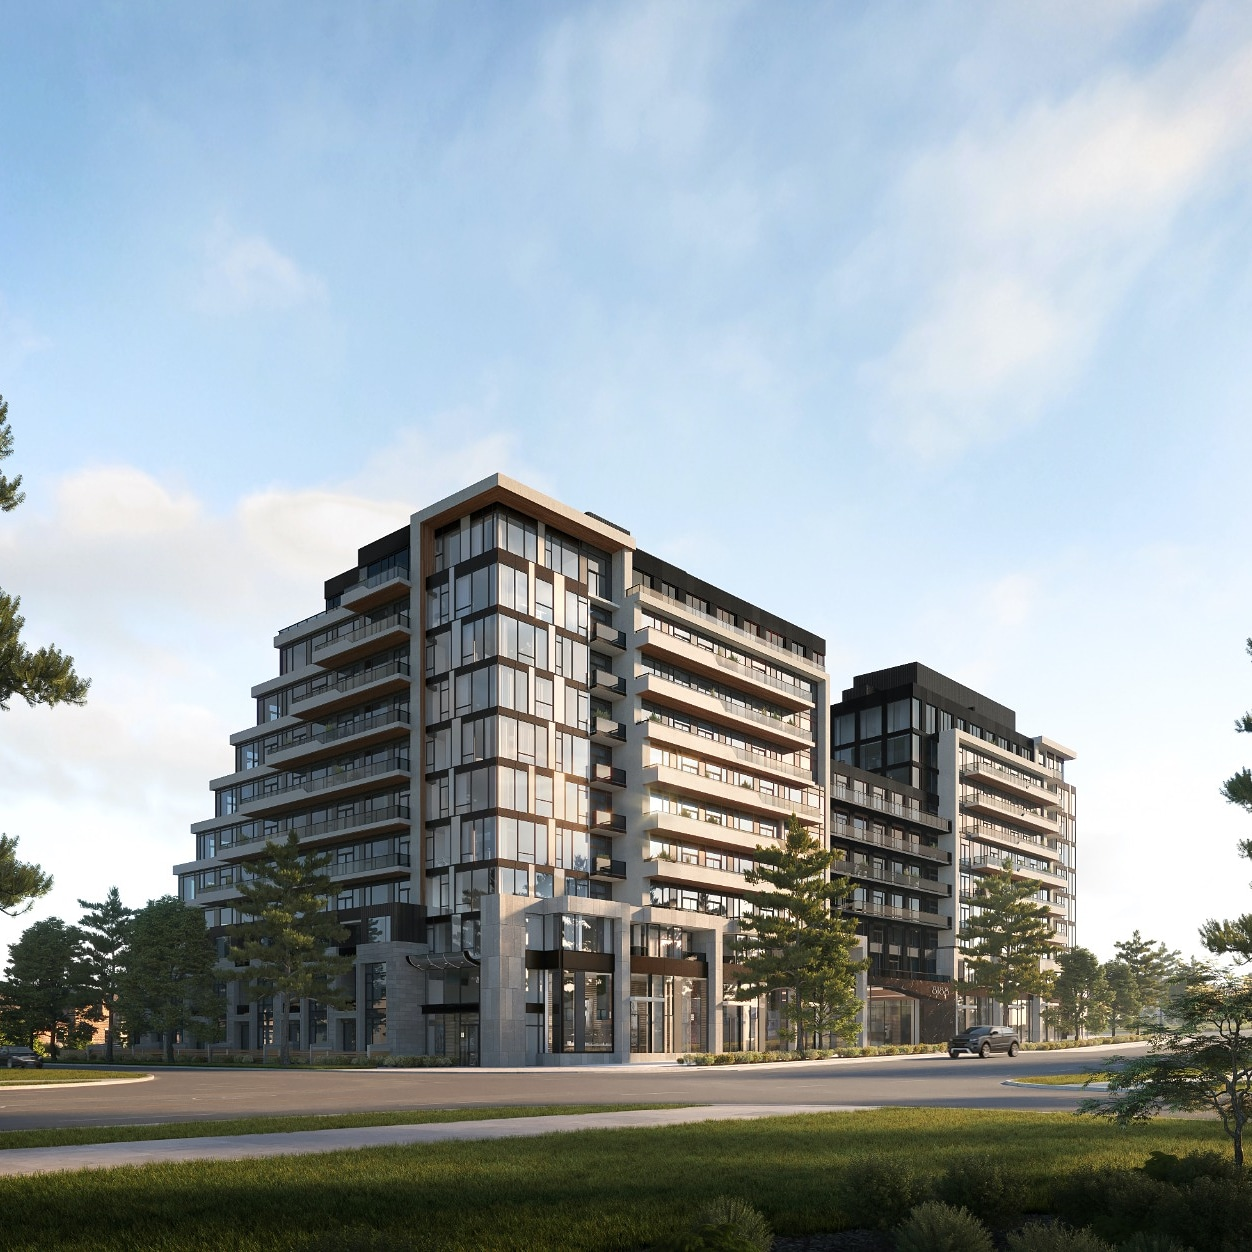 Exterior rendering of 8188 Yonge Condos in Vaughan